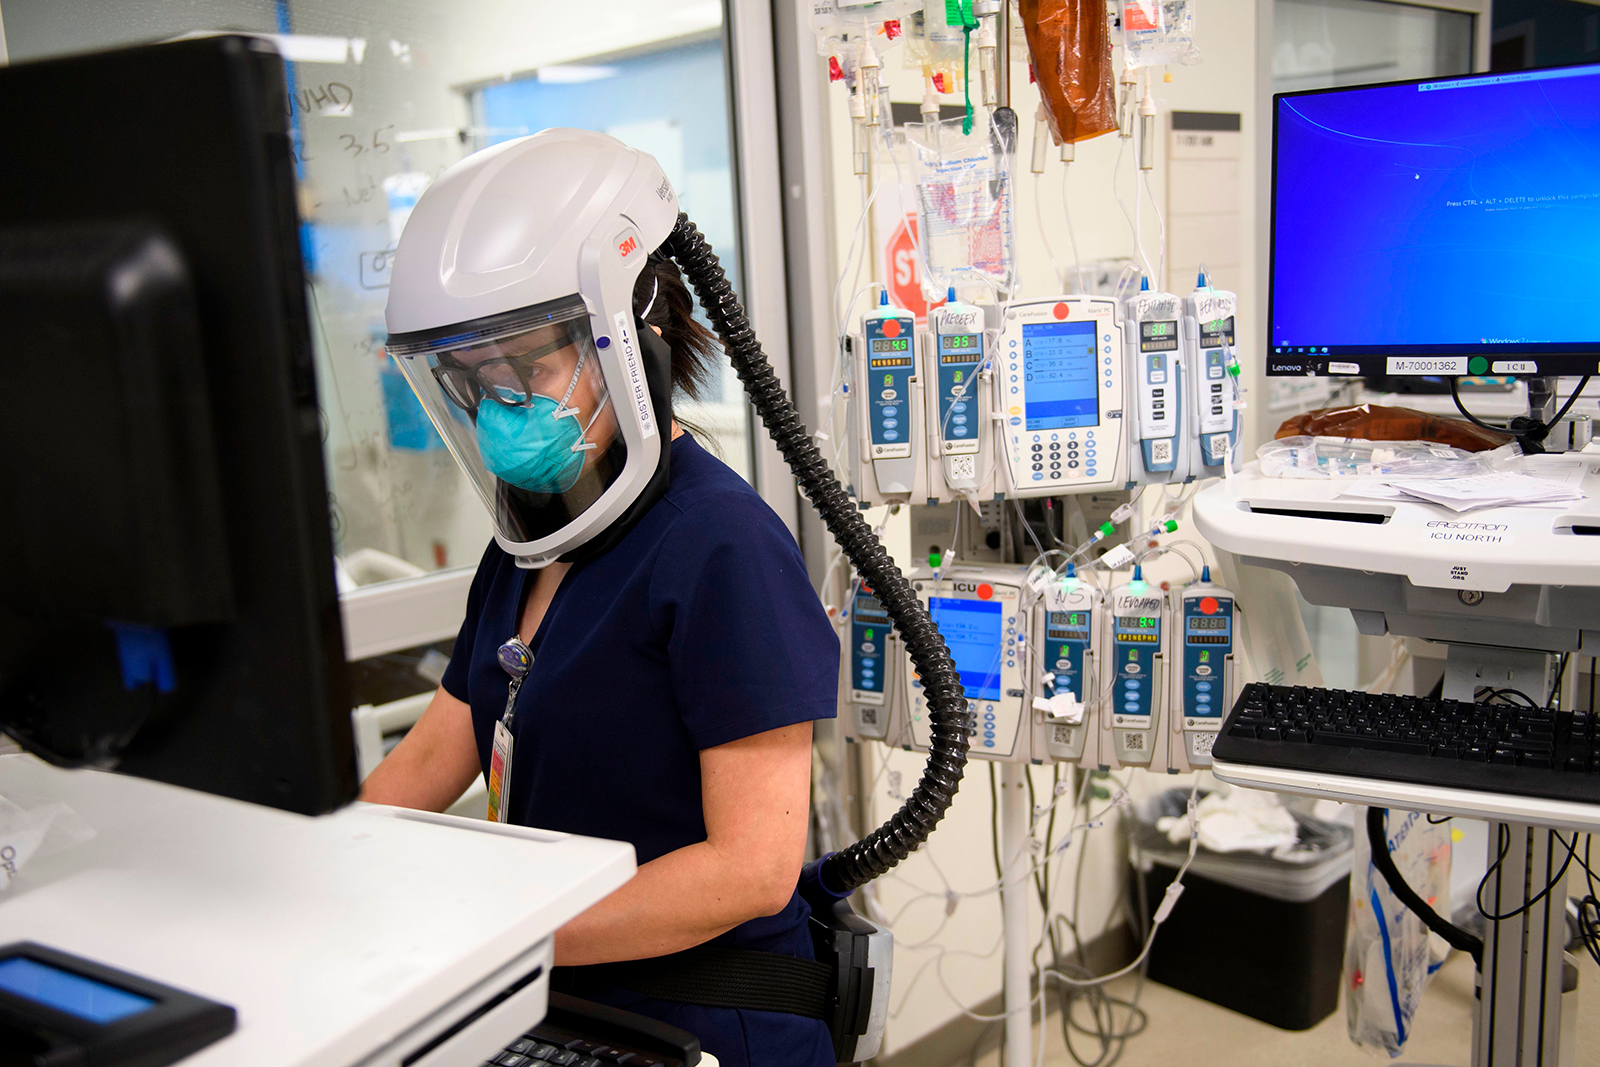 A nurse wearing personal protective equipment works in a Covid-19 intensive care unit at Martin Luther King Jr. Community Hospital on January 6, in the Willowbrook neighborhood of Los Angeles.